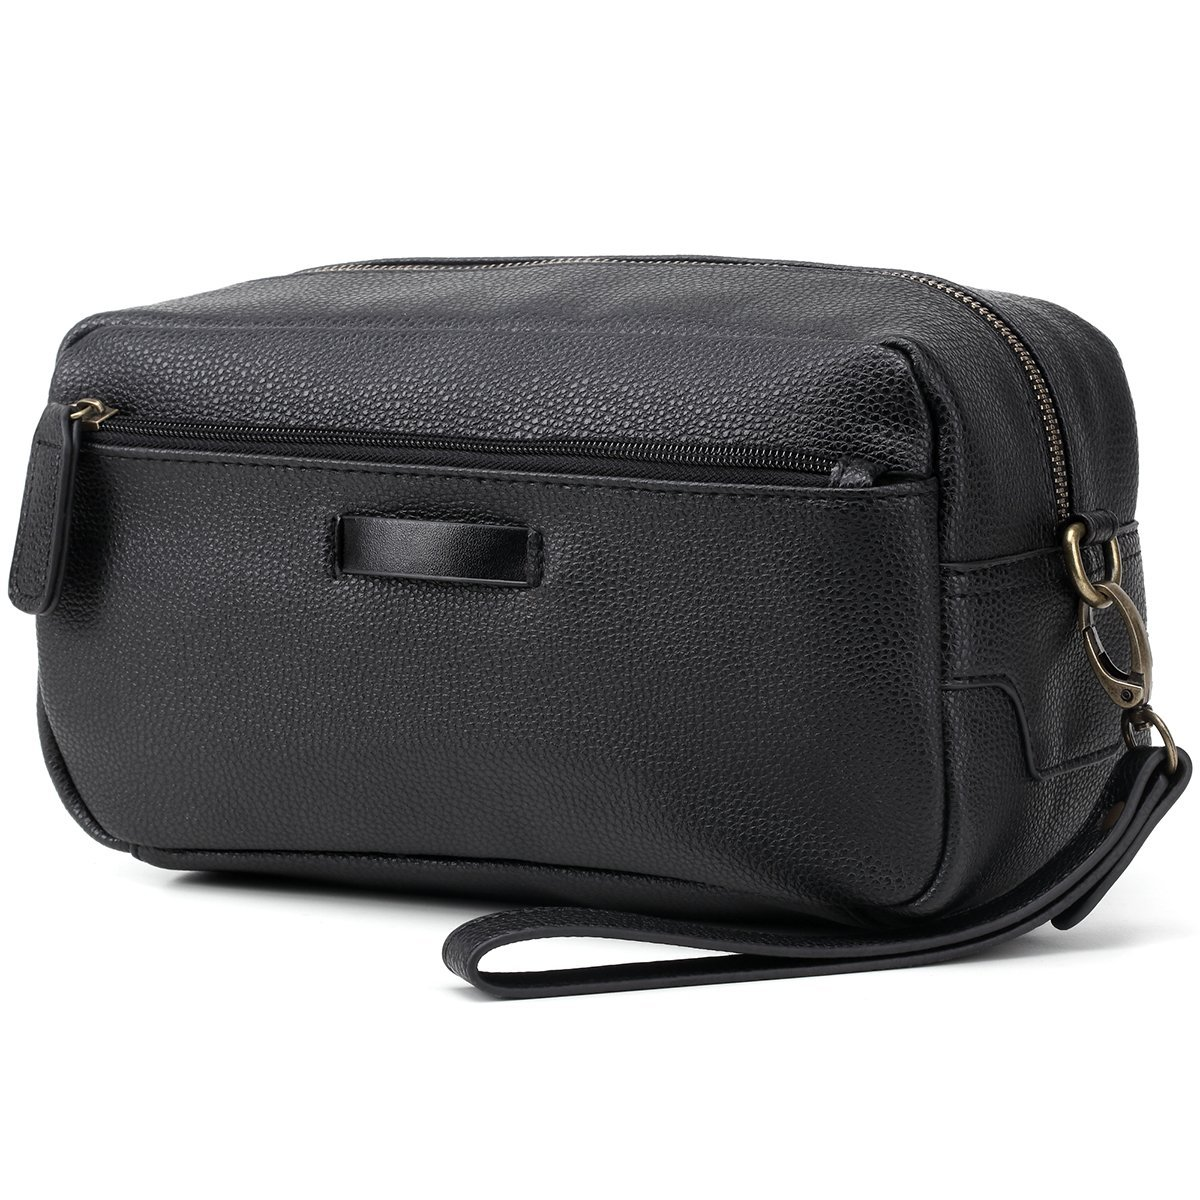 82192c45e761 Get Quotations · Leather Toiletry Bag mens toiletry bag Travel bags for toiletries  shaving kit bag Dopp Kit with